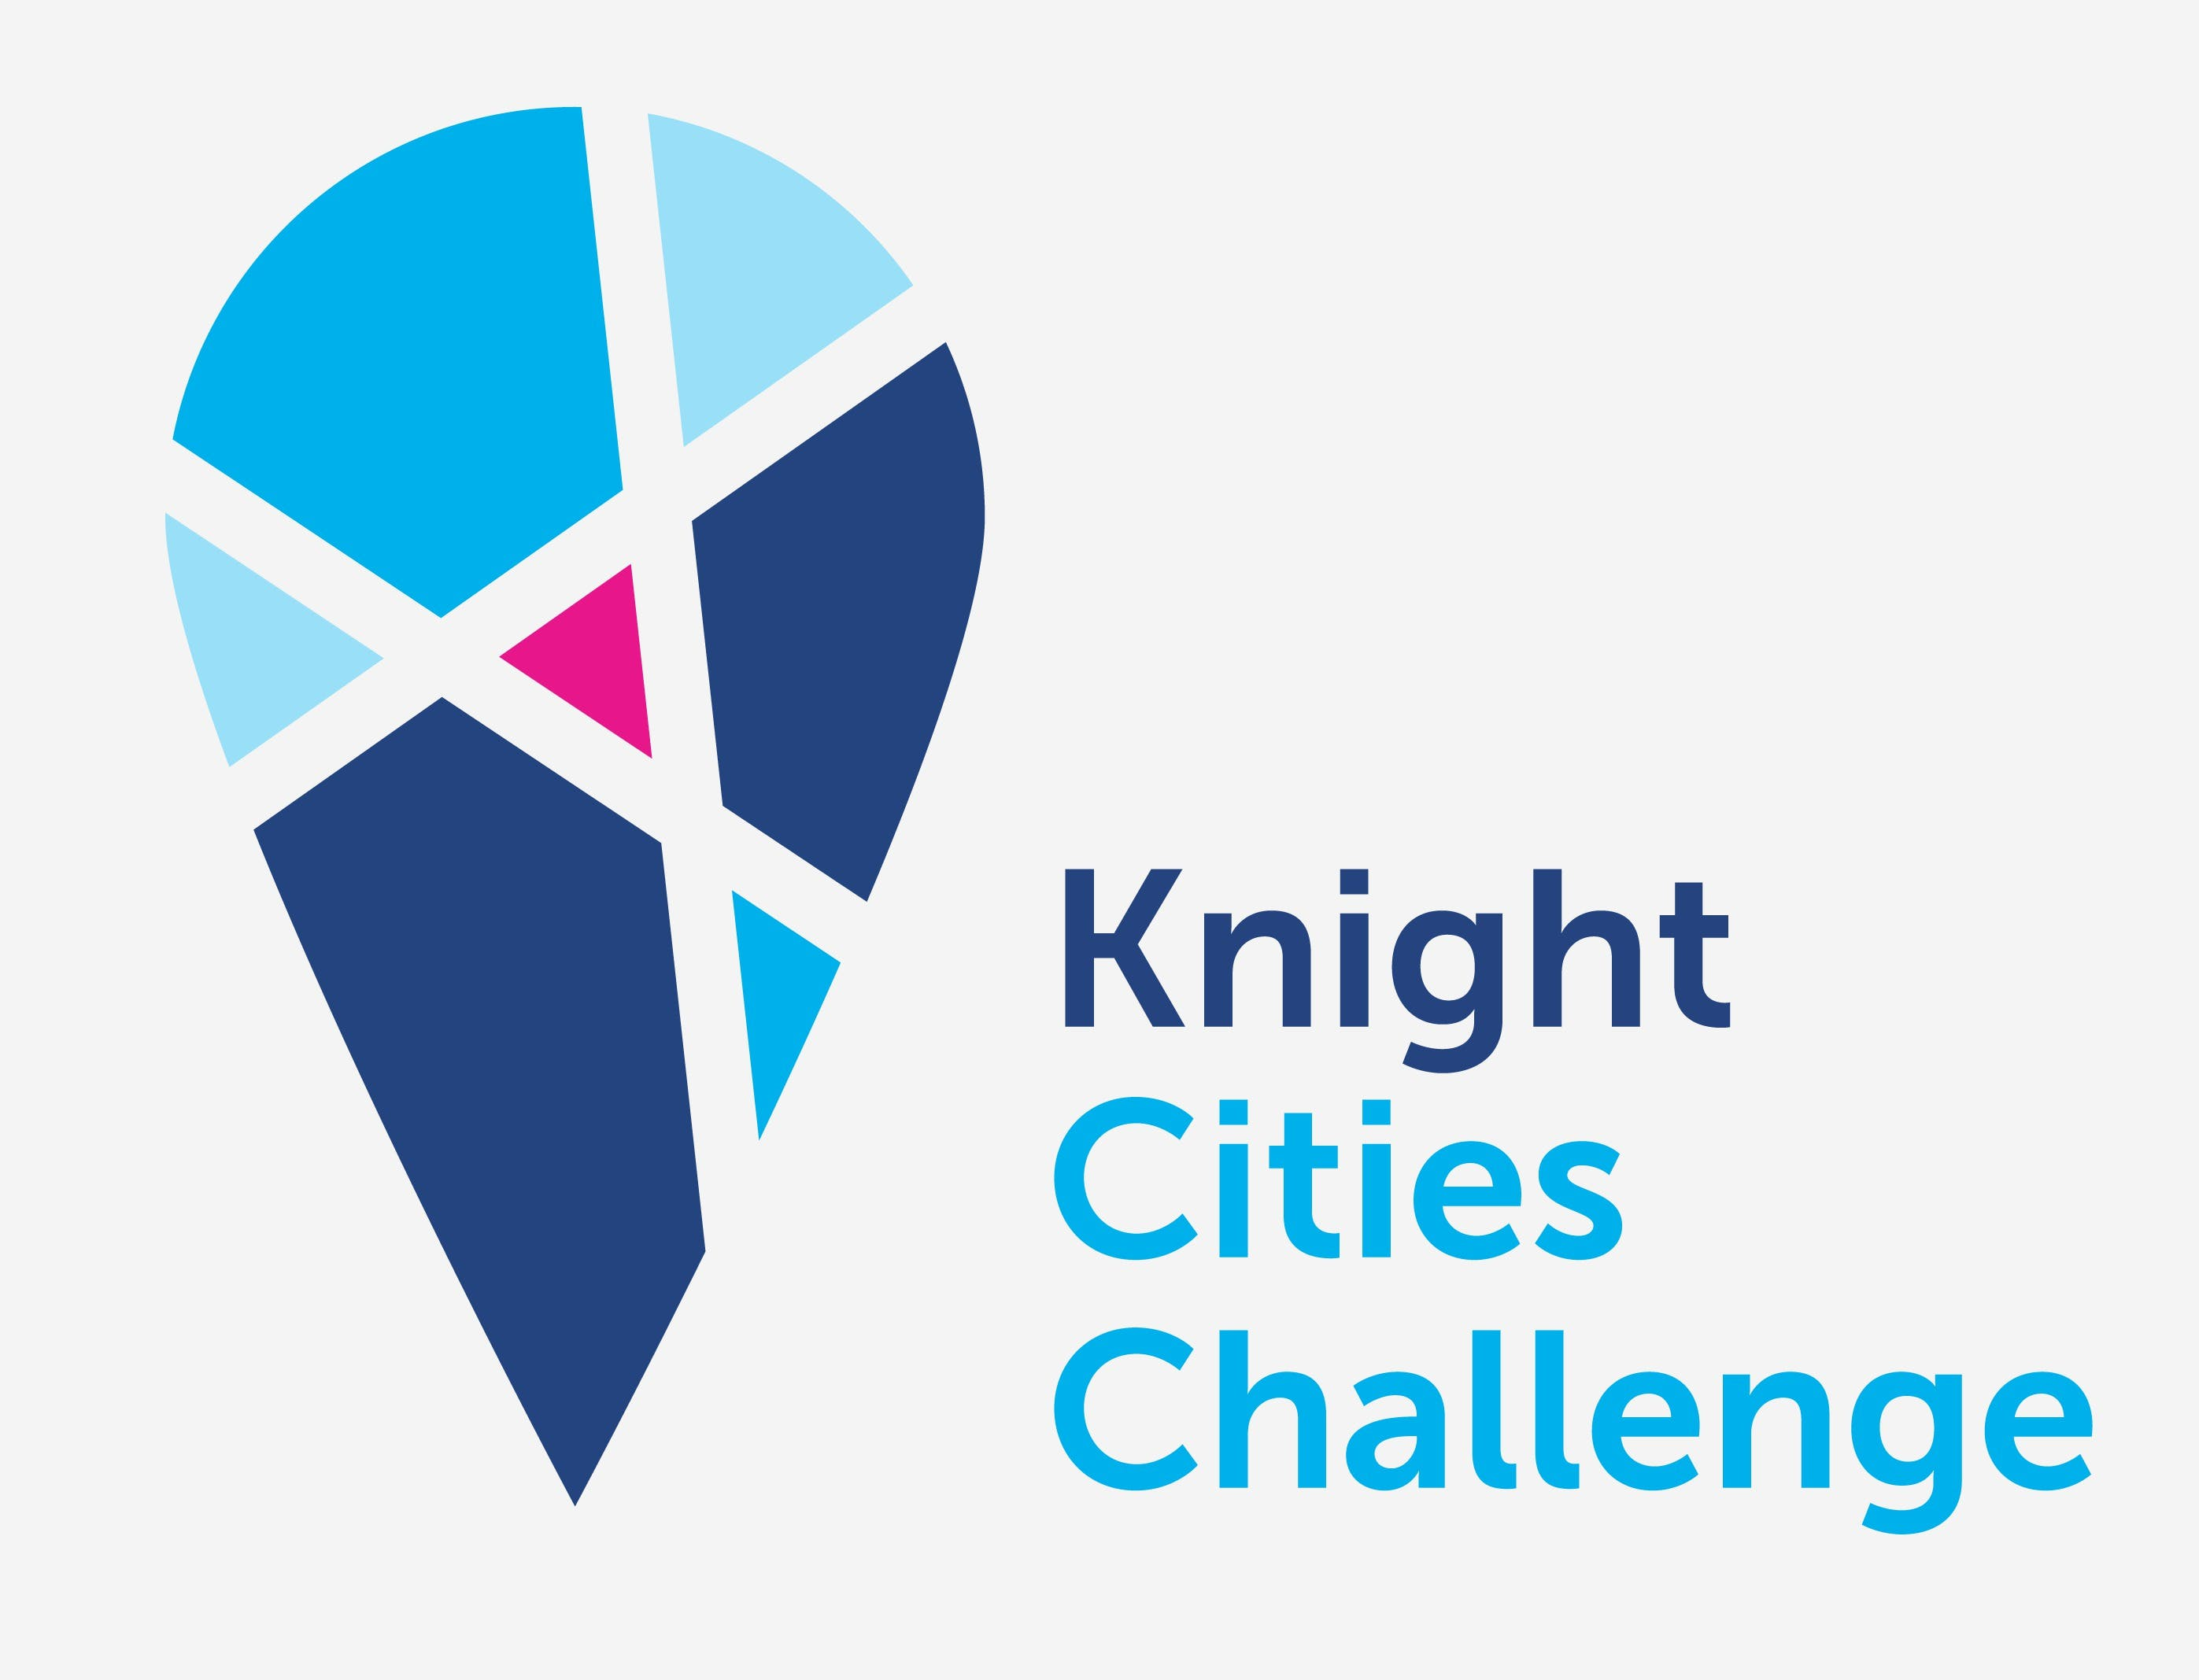 "<p><strong><em>The Knight Cities Challenge&nbsp;seeks new ideas from innovators who will take hold of the future of our cities. Since&nbsp;the first challenge opened in 2014, almost 70 projects have shared in $10 million in the 26 communities where Knight invests. Browse projects at <a href=""http://www.knightcities.org/"">knightcities.org</a> and submit your application starting Oct. 10.</em></strong></p>"